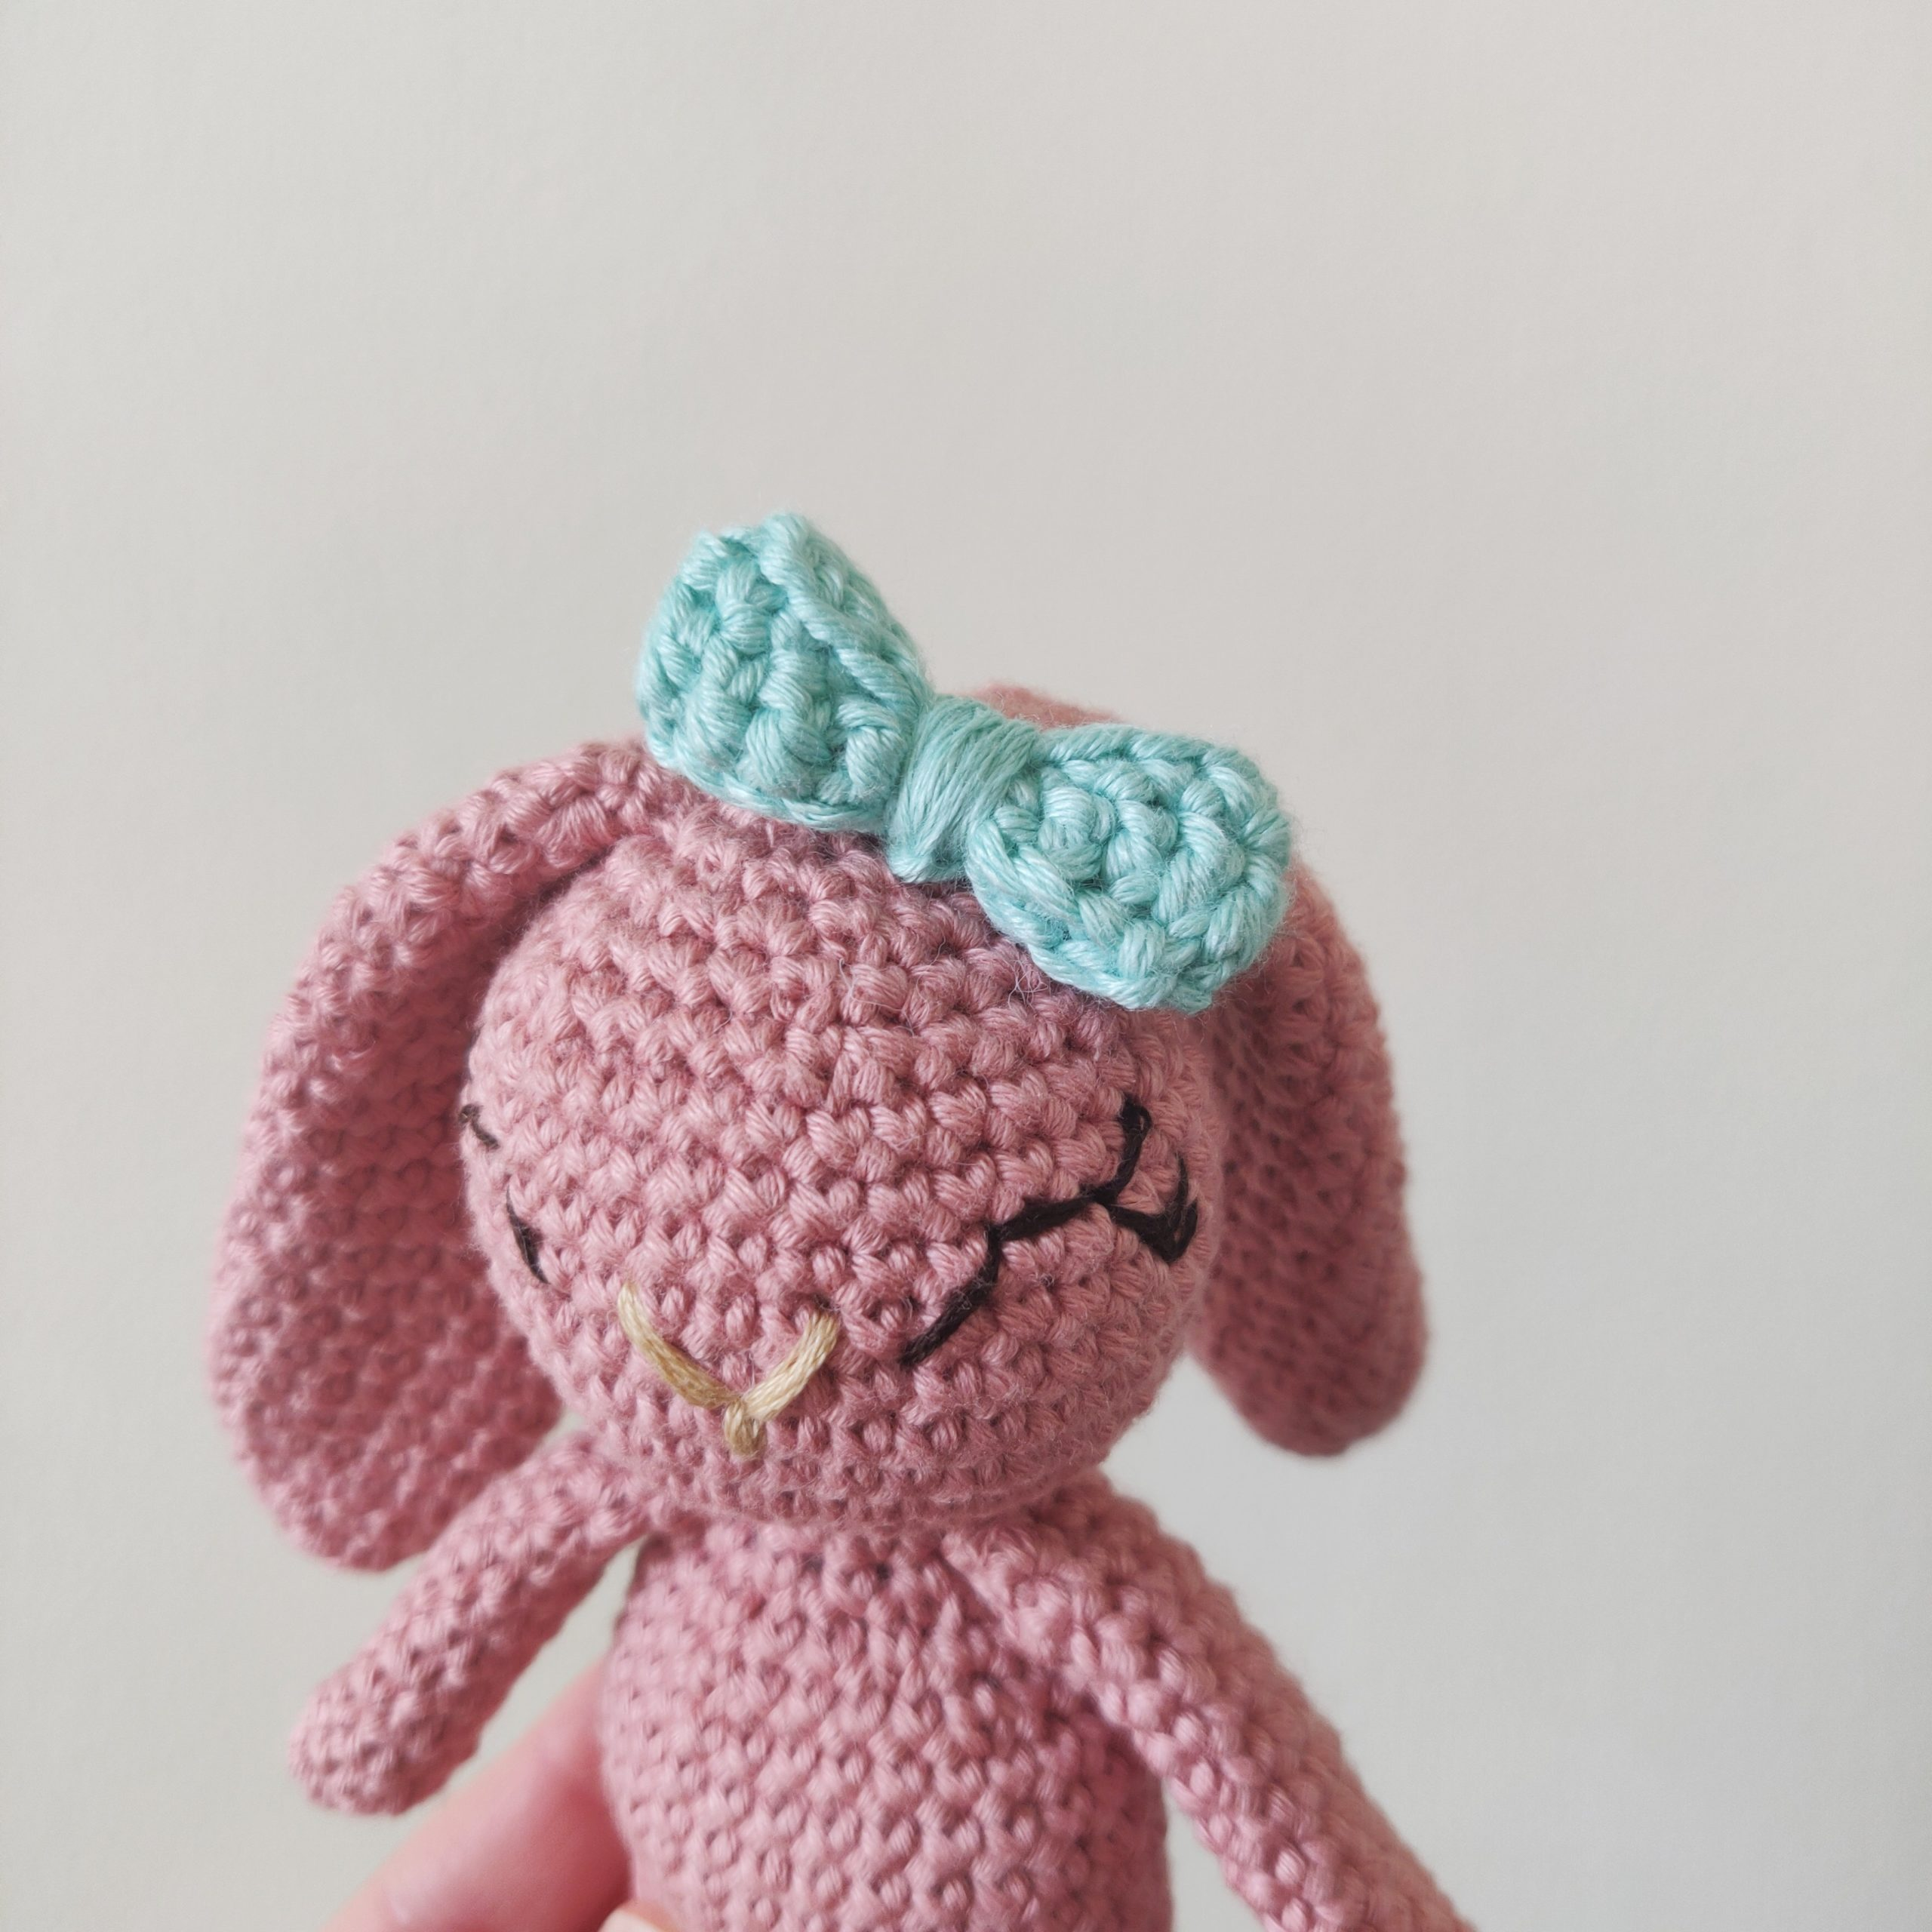 Pink crochet bunny with blue crochet bow.